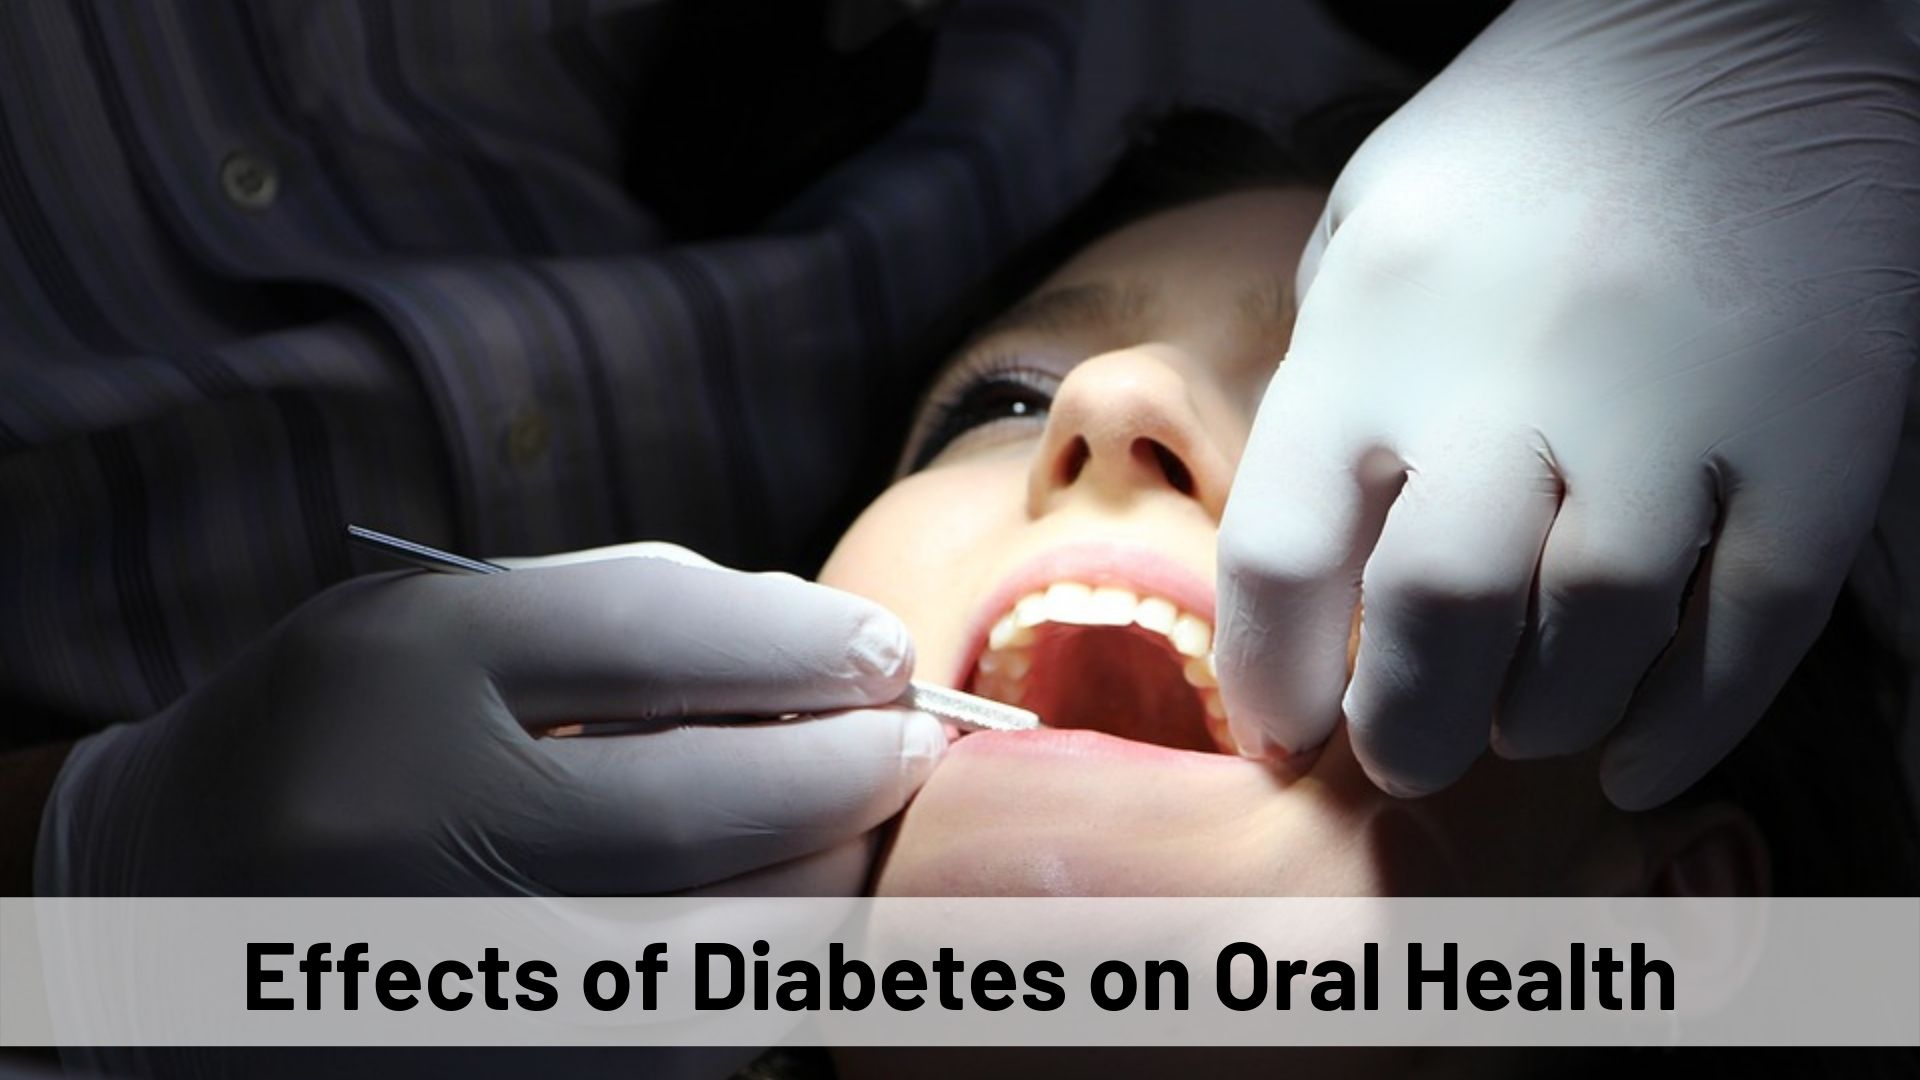 Effects of Diabetes on Oral Health